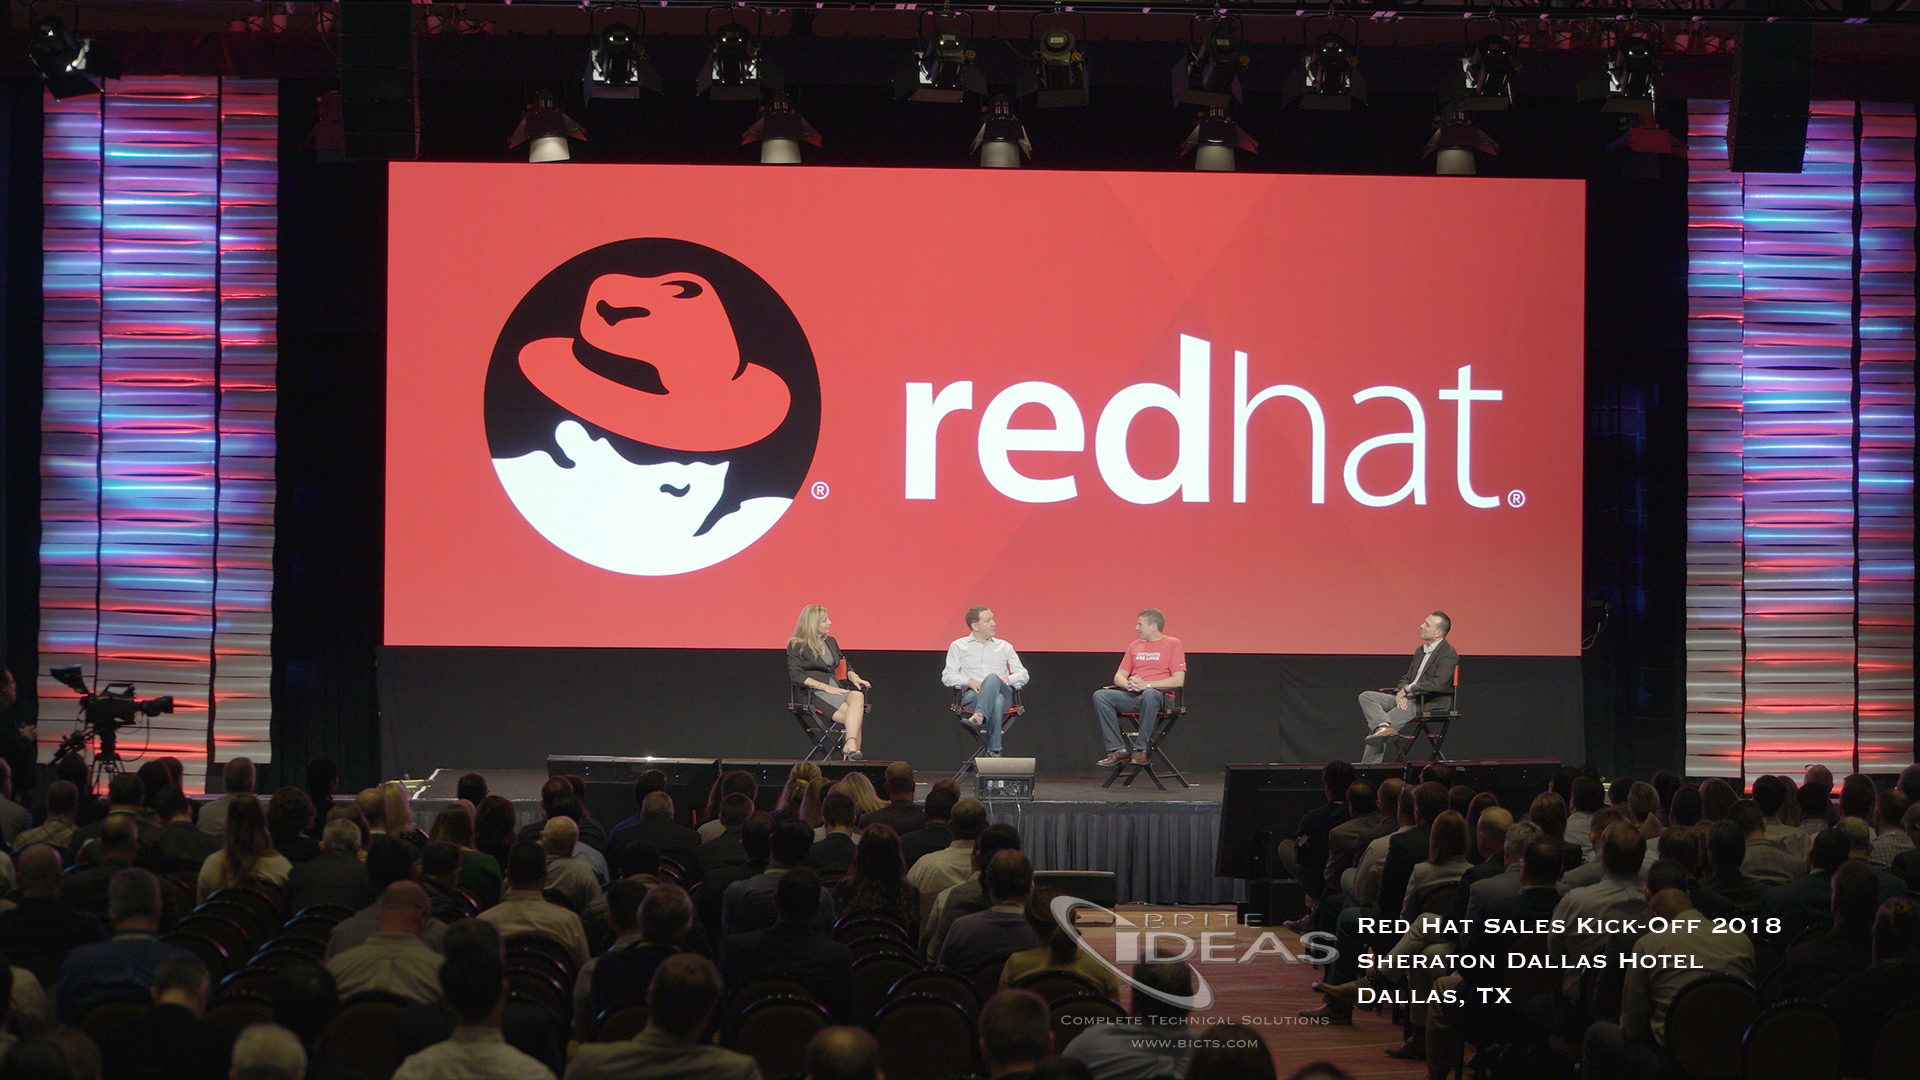 RedHat SKO_2018_3_Corporate.jpg